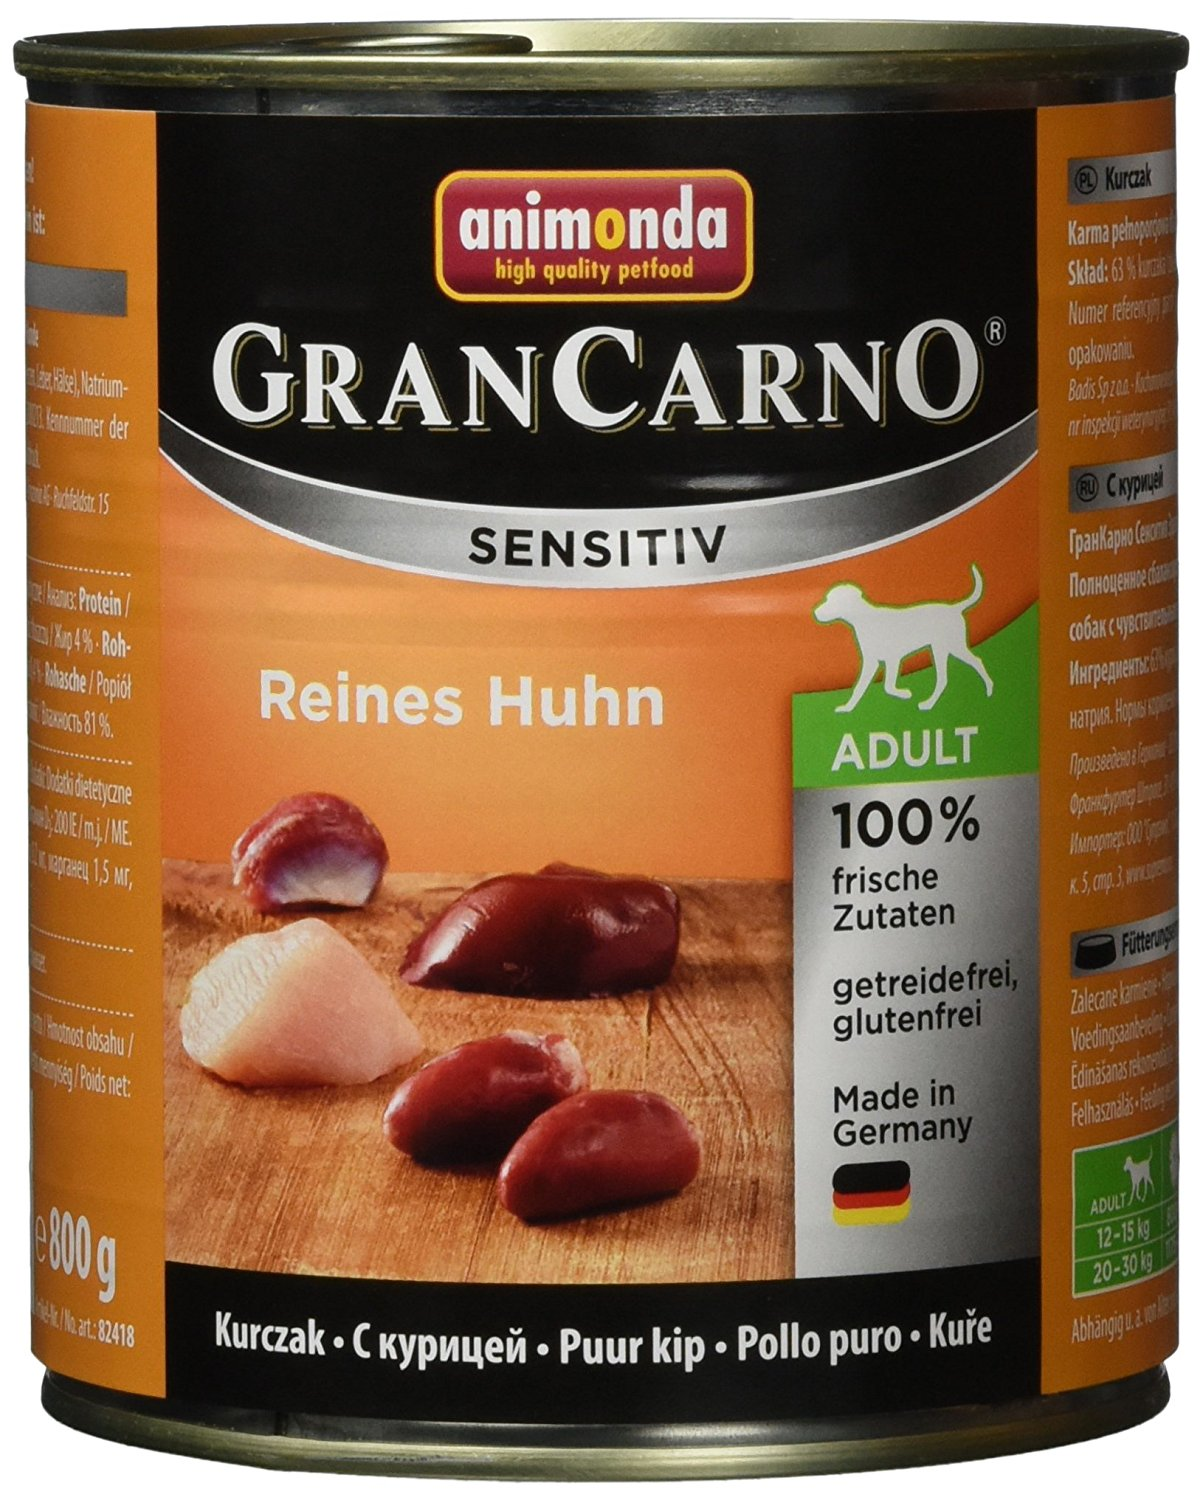 Animonda Gran Carno Hundefutter Sensitive Adult Reines Huhn, 6er Pack